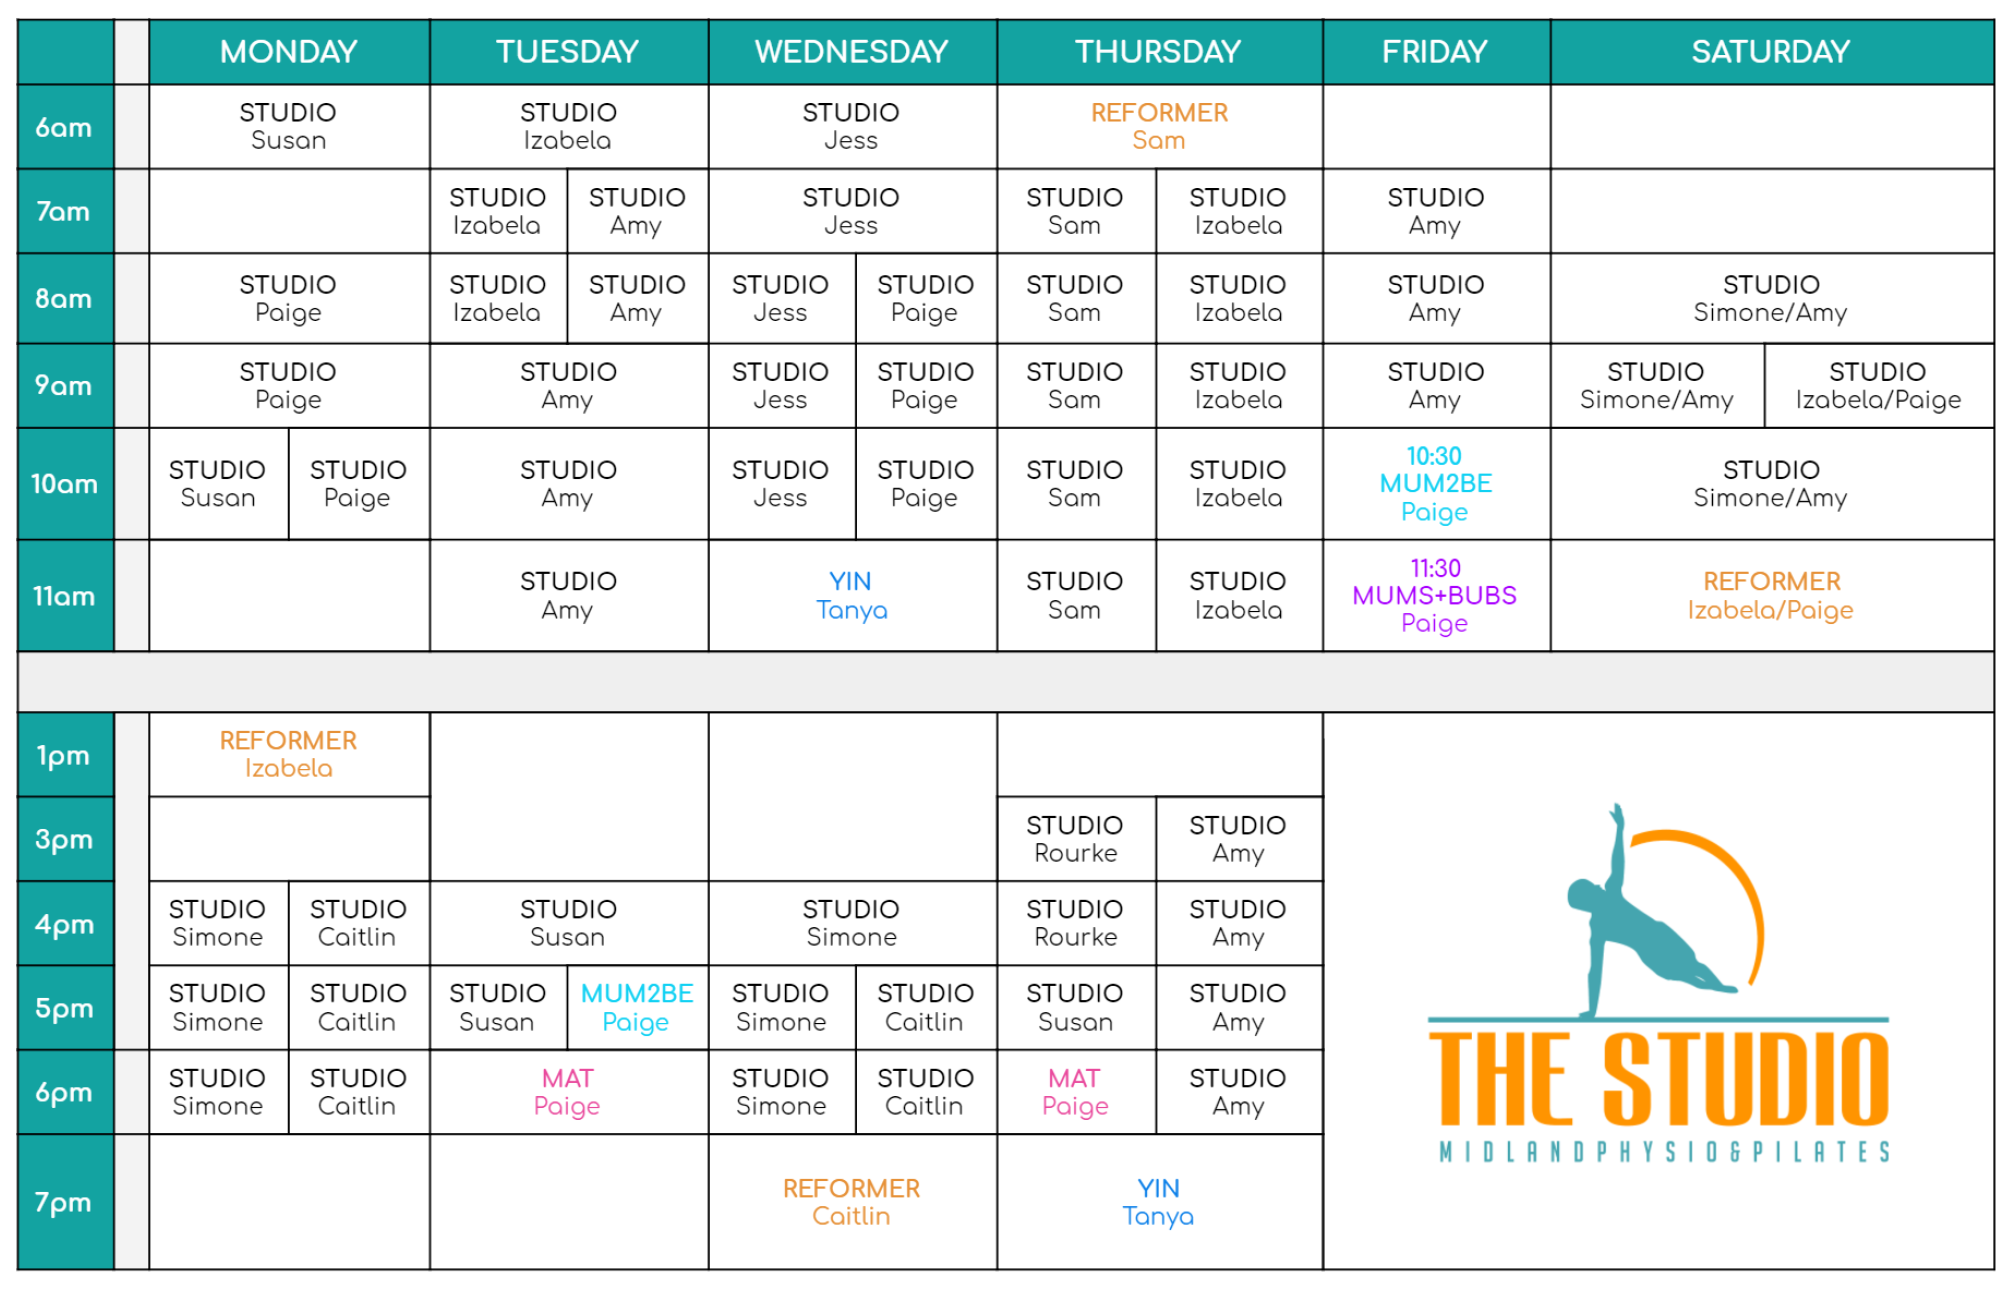 Mat and Studio Pilates Timetable - The Studio Midland